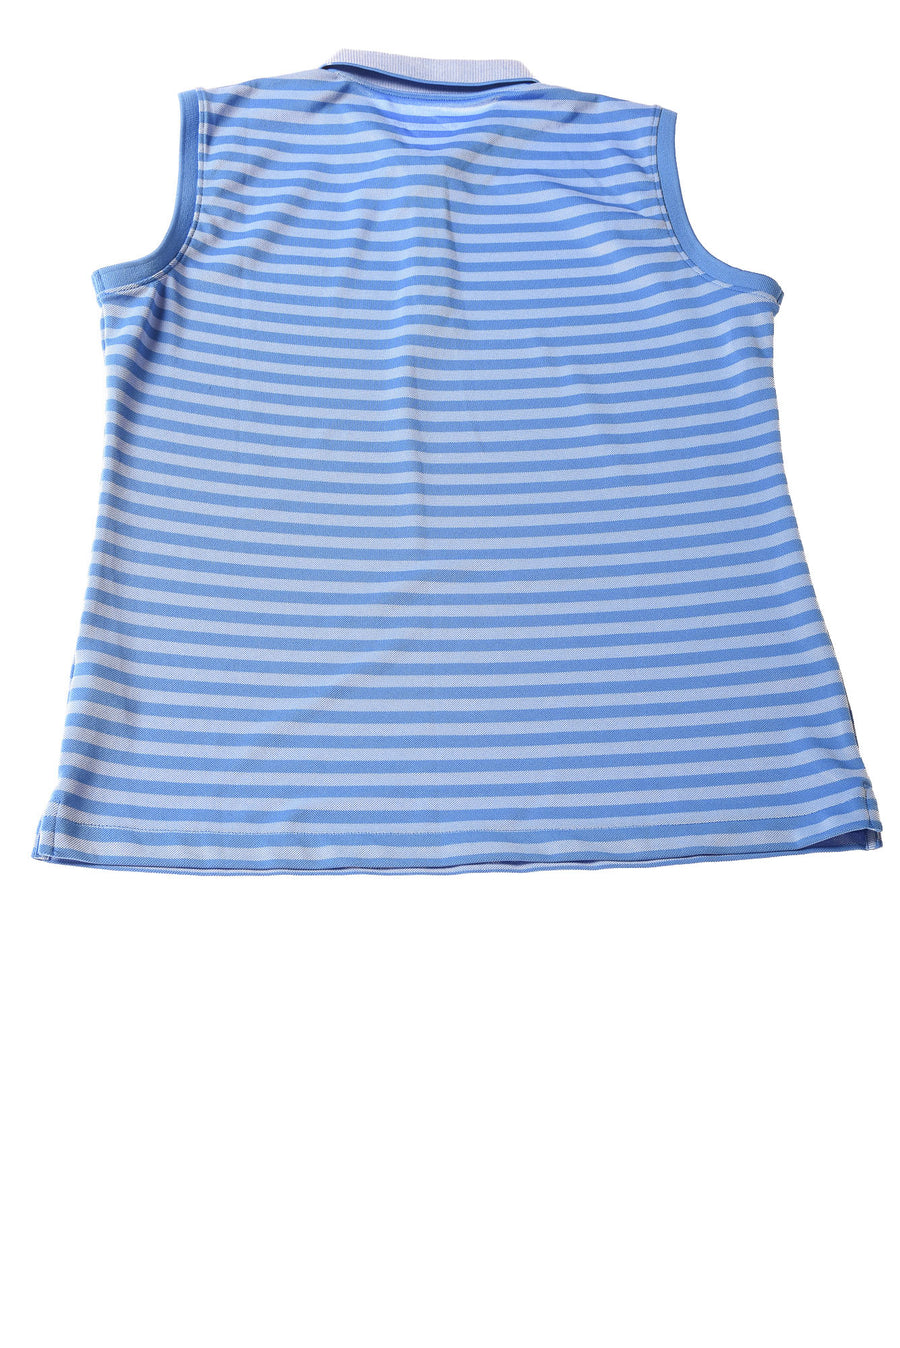 Women's Top By Vineyard Vines